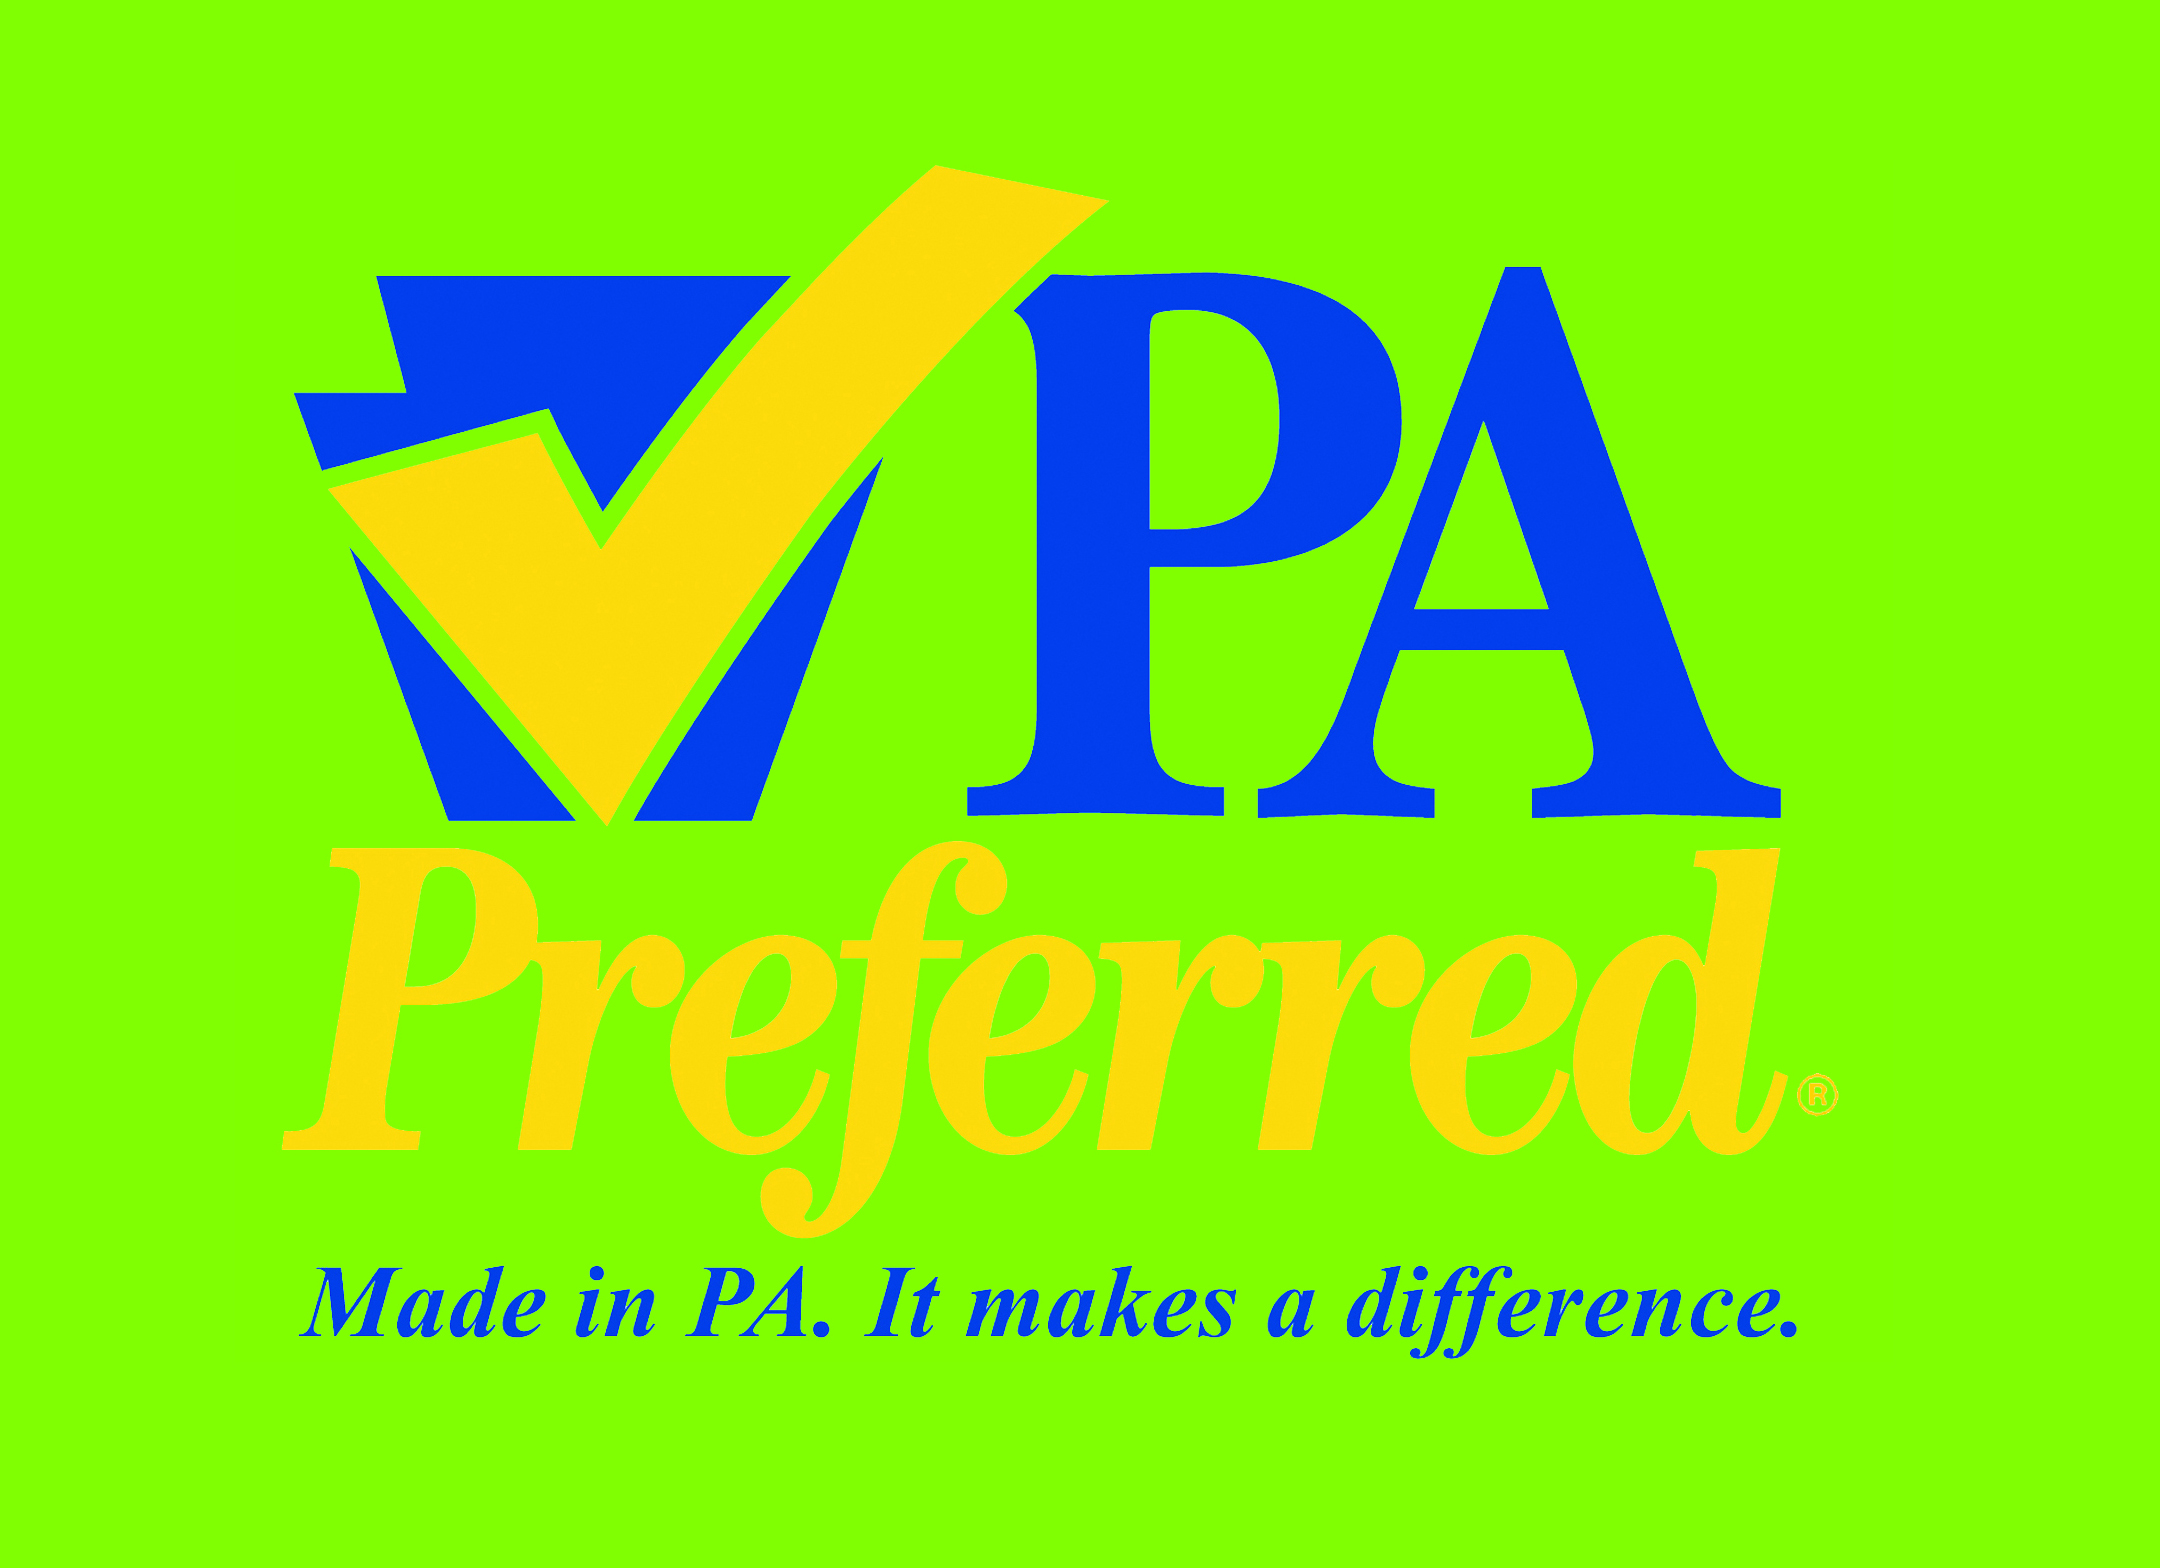 We are proud to be recognized as a PA Preferred business and we try to source our ingredients from PA farms and producers whenever possible.